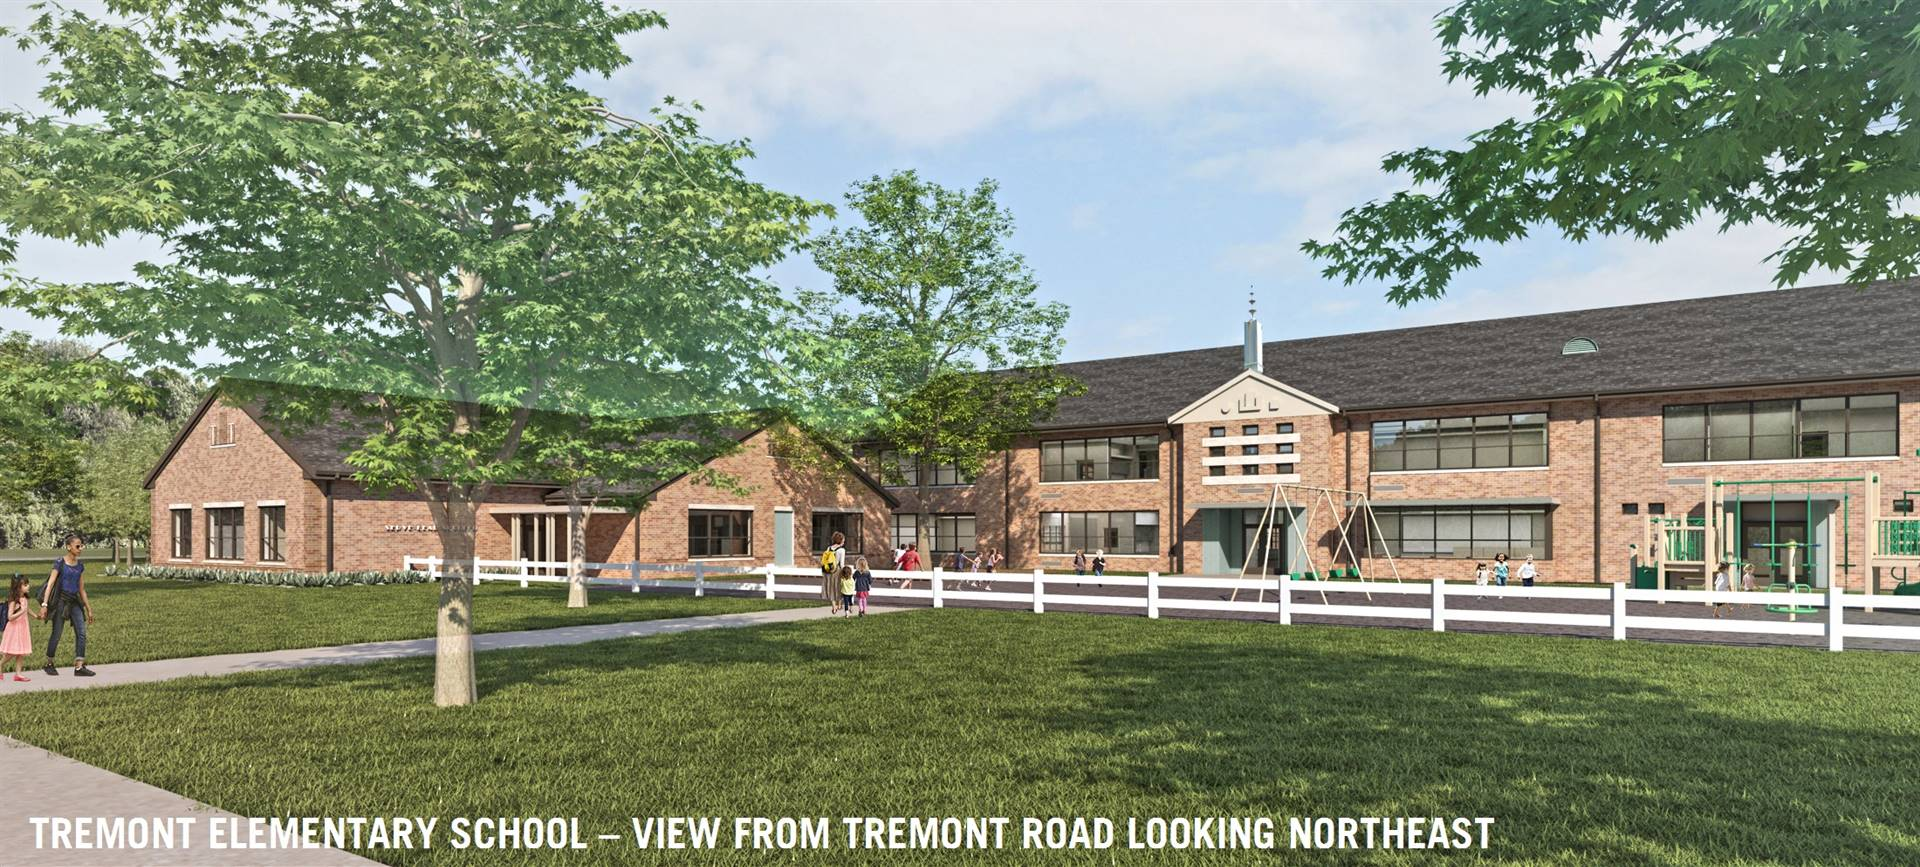 A view from Tremont Road looking northeast on Tremont Elementary School and a new addition